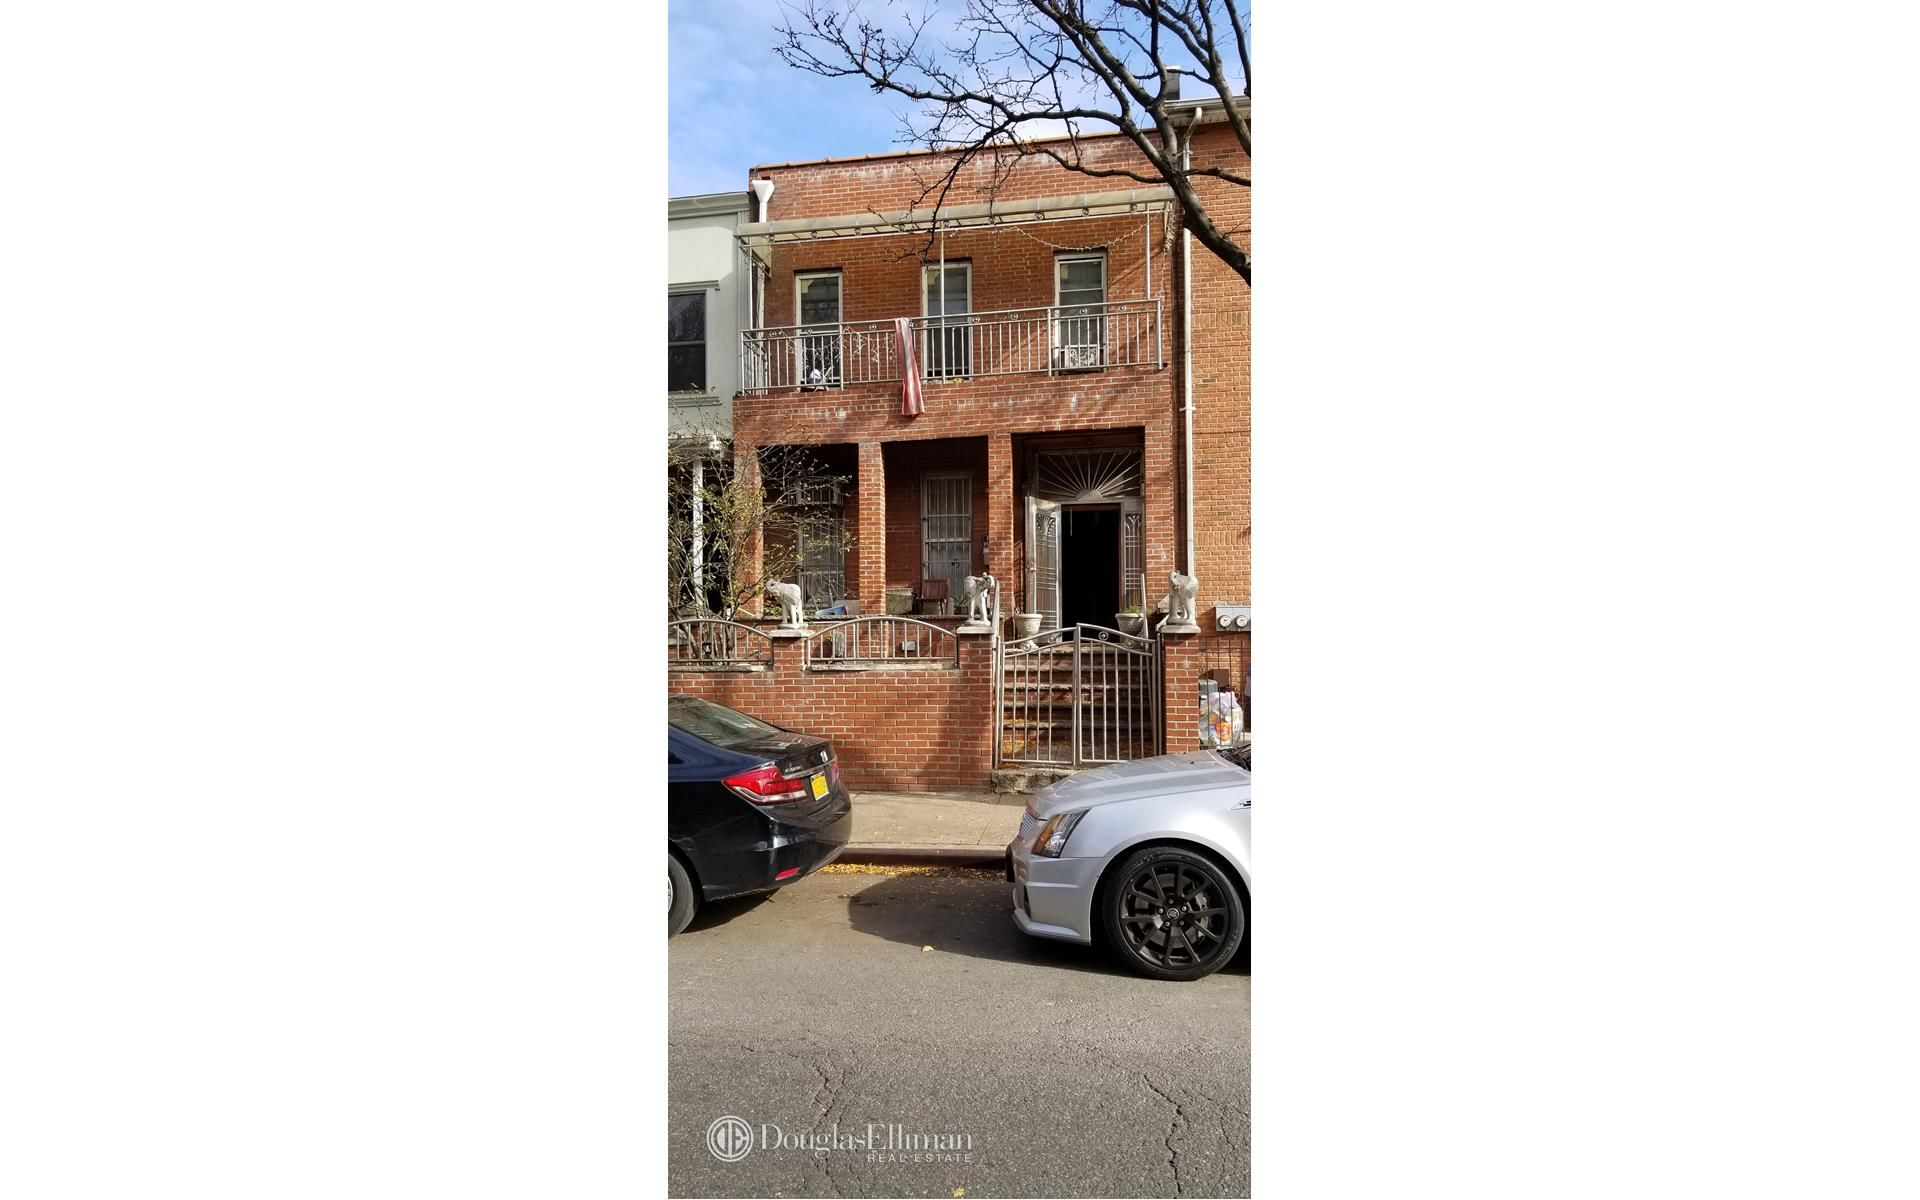 99 Malcolm X Blvd Photo 0 - ELLIMAN-2972740